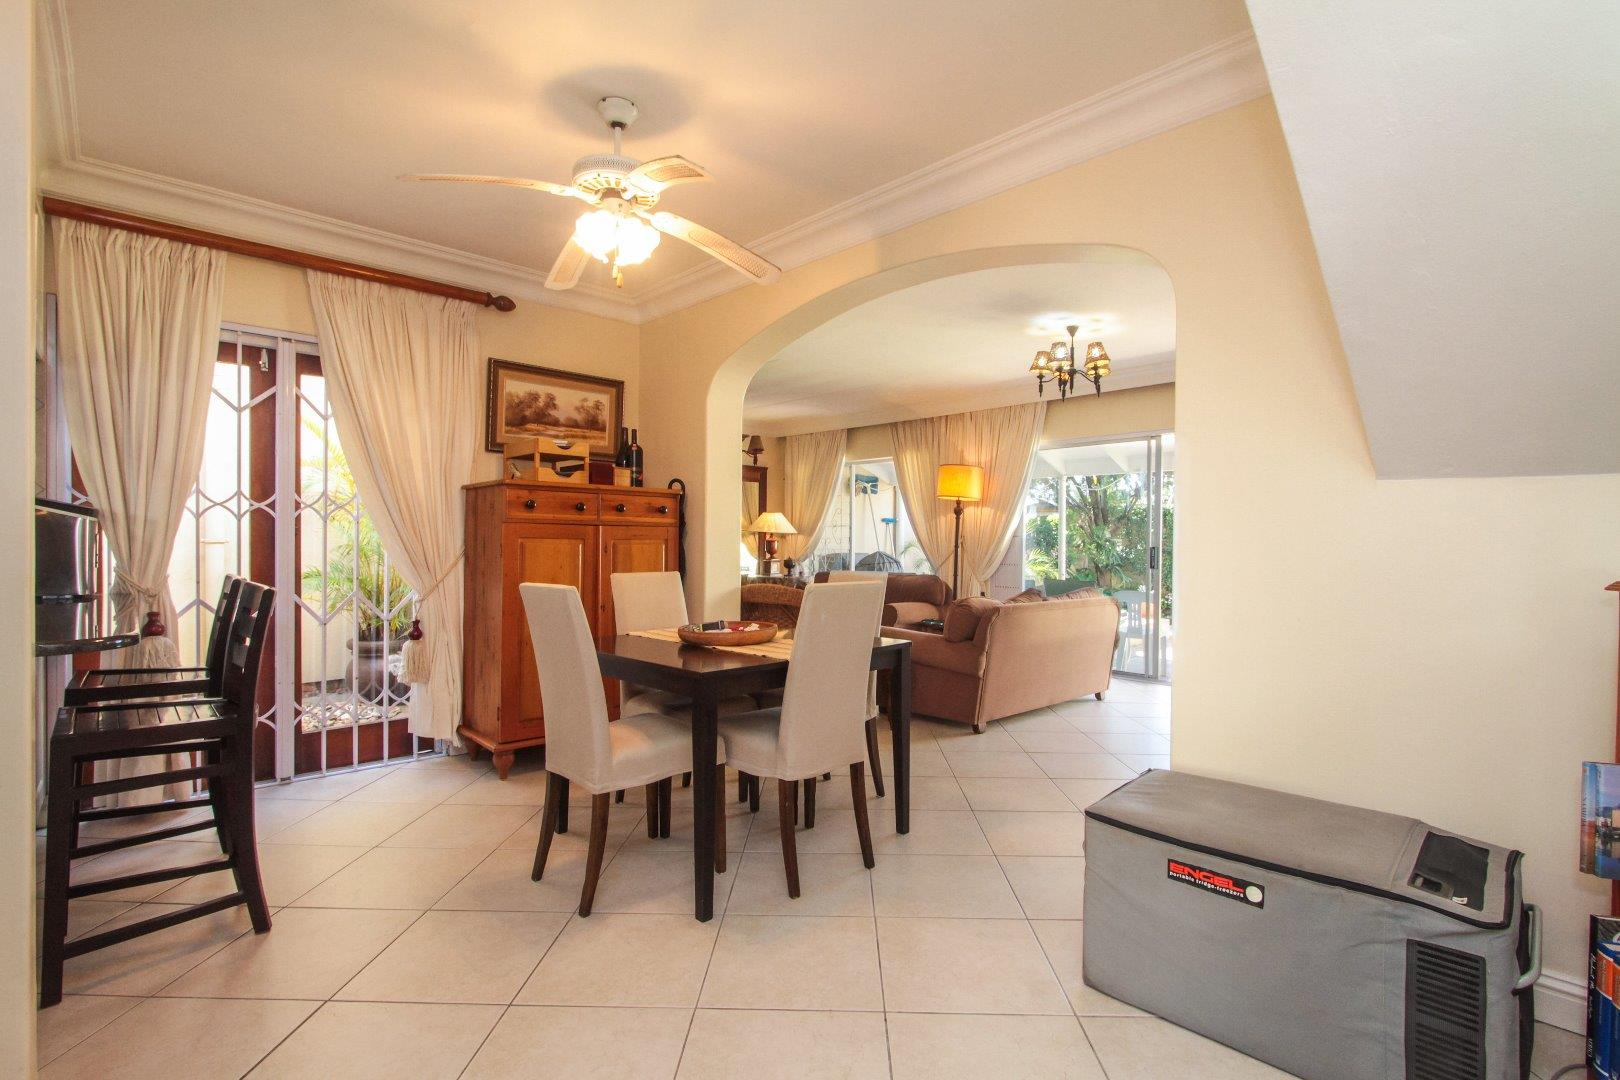 3 Bedroom House For Sale in Durban North